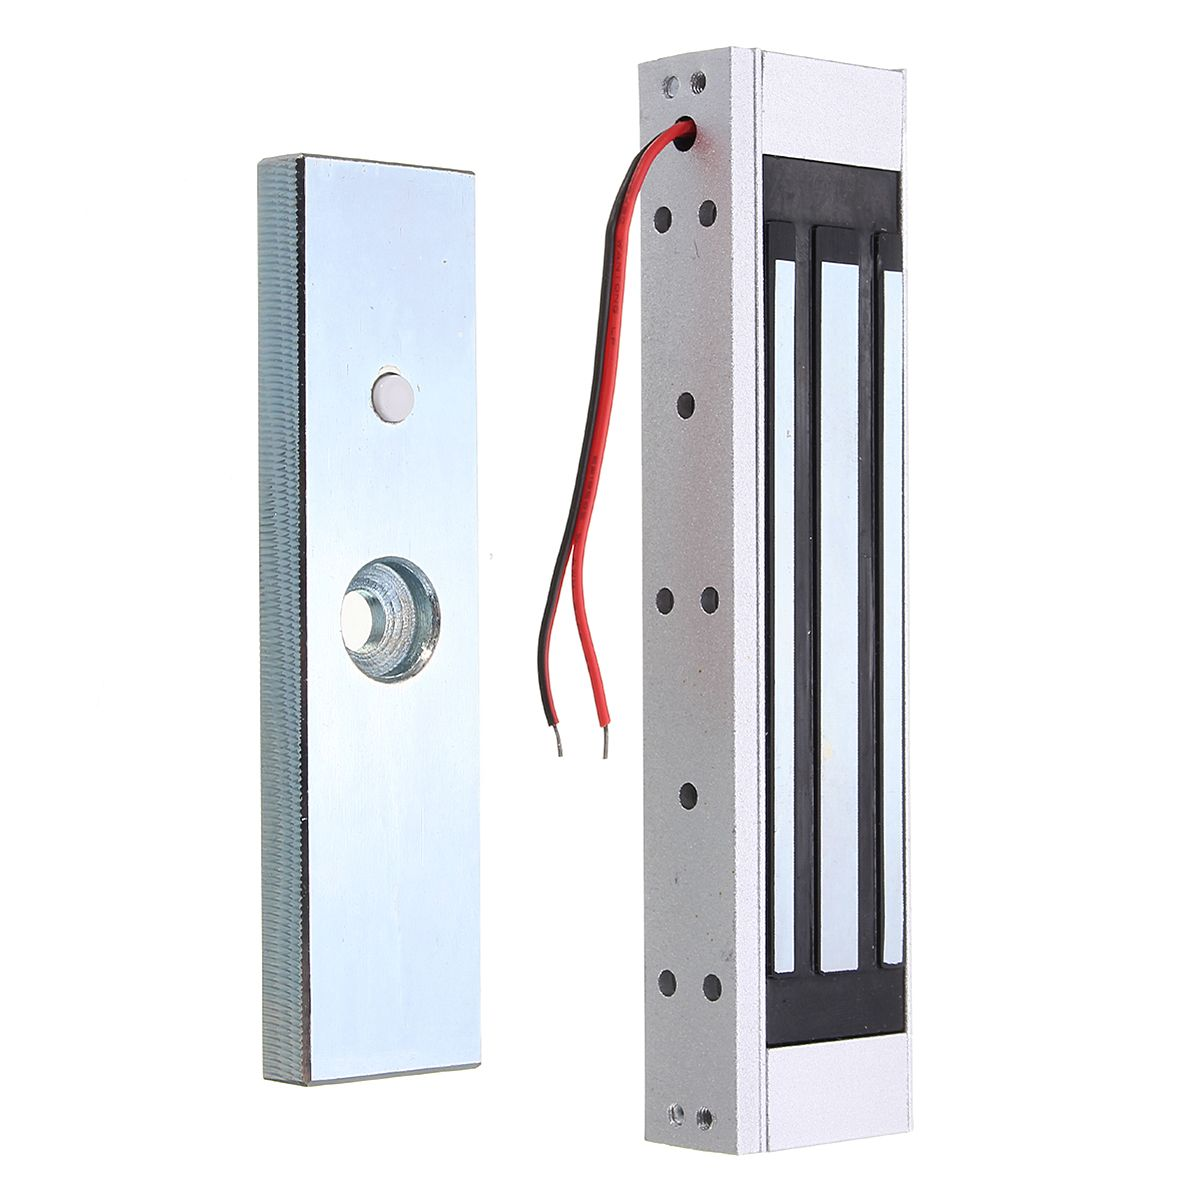 Single Door 12v Electric Magnetic Electric Magnetic Lock 180kg 350lb Electromagnetic Lock Electricity Security System